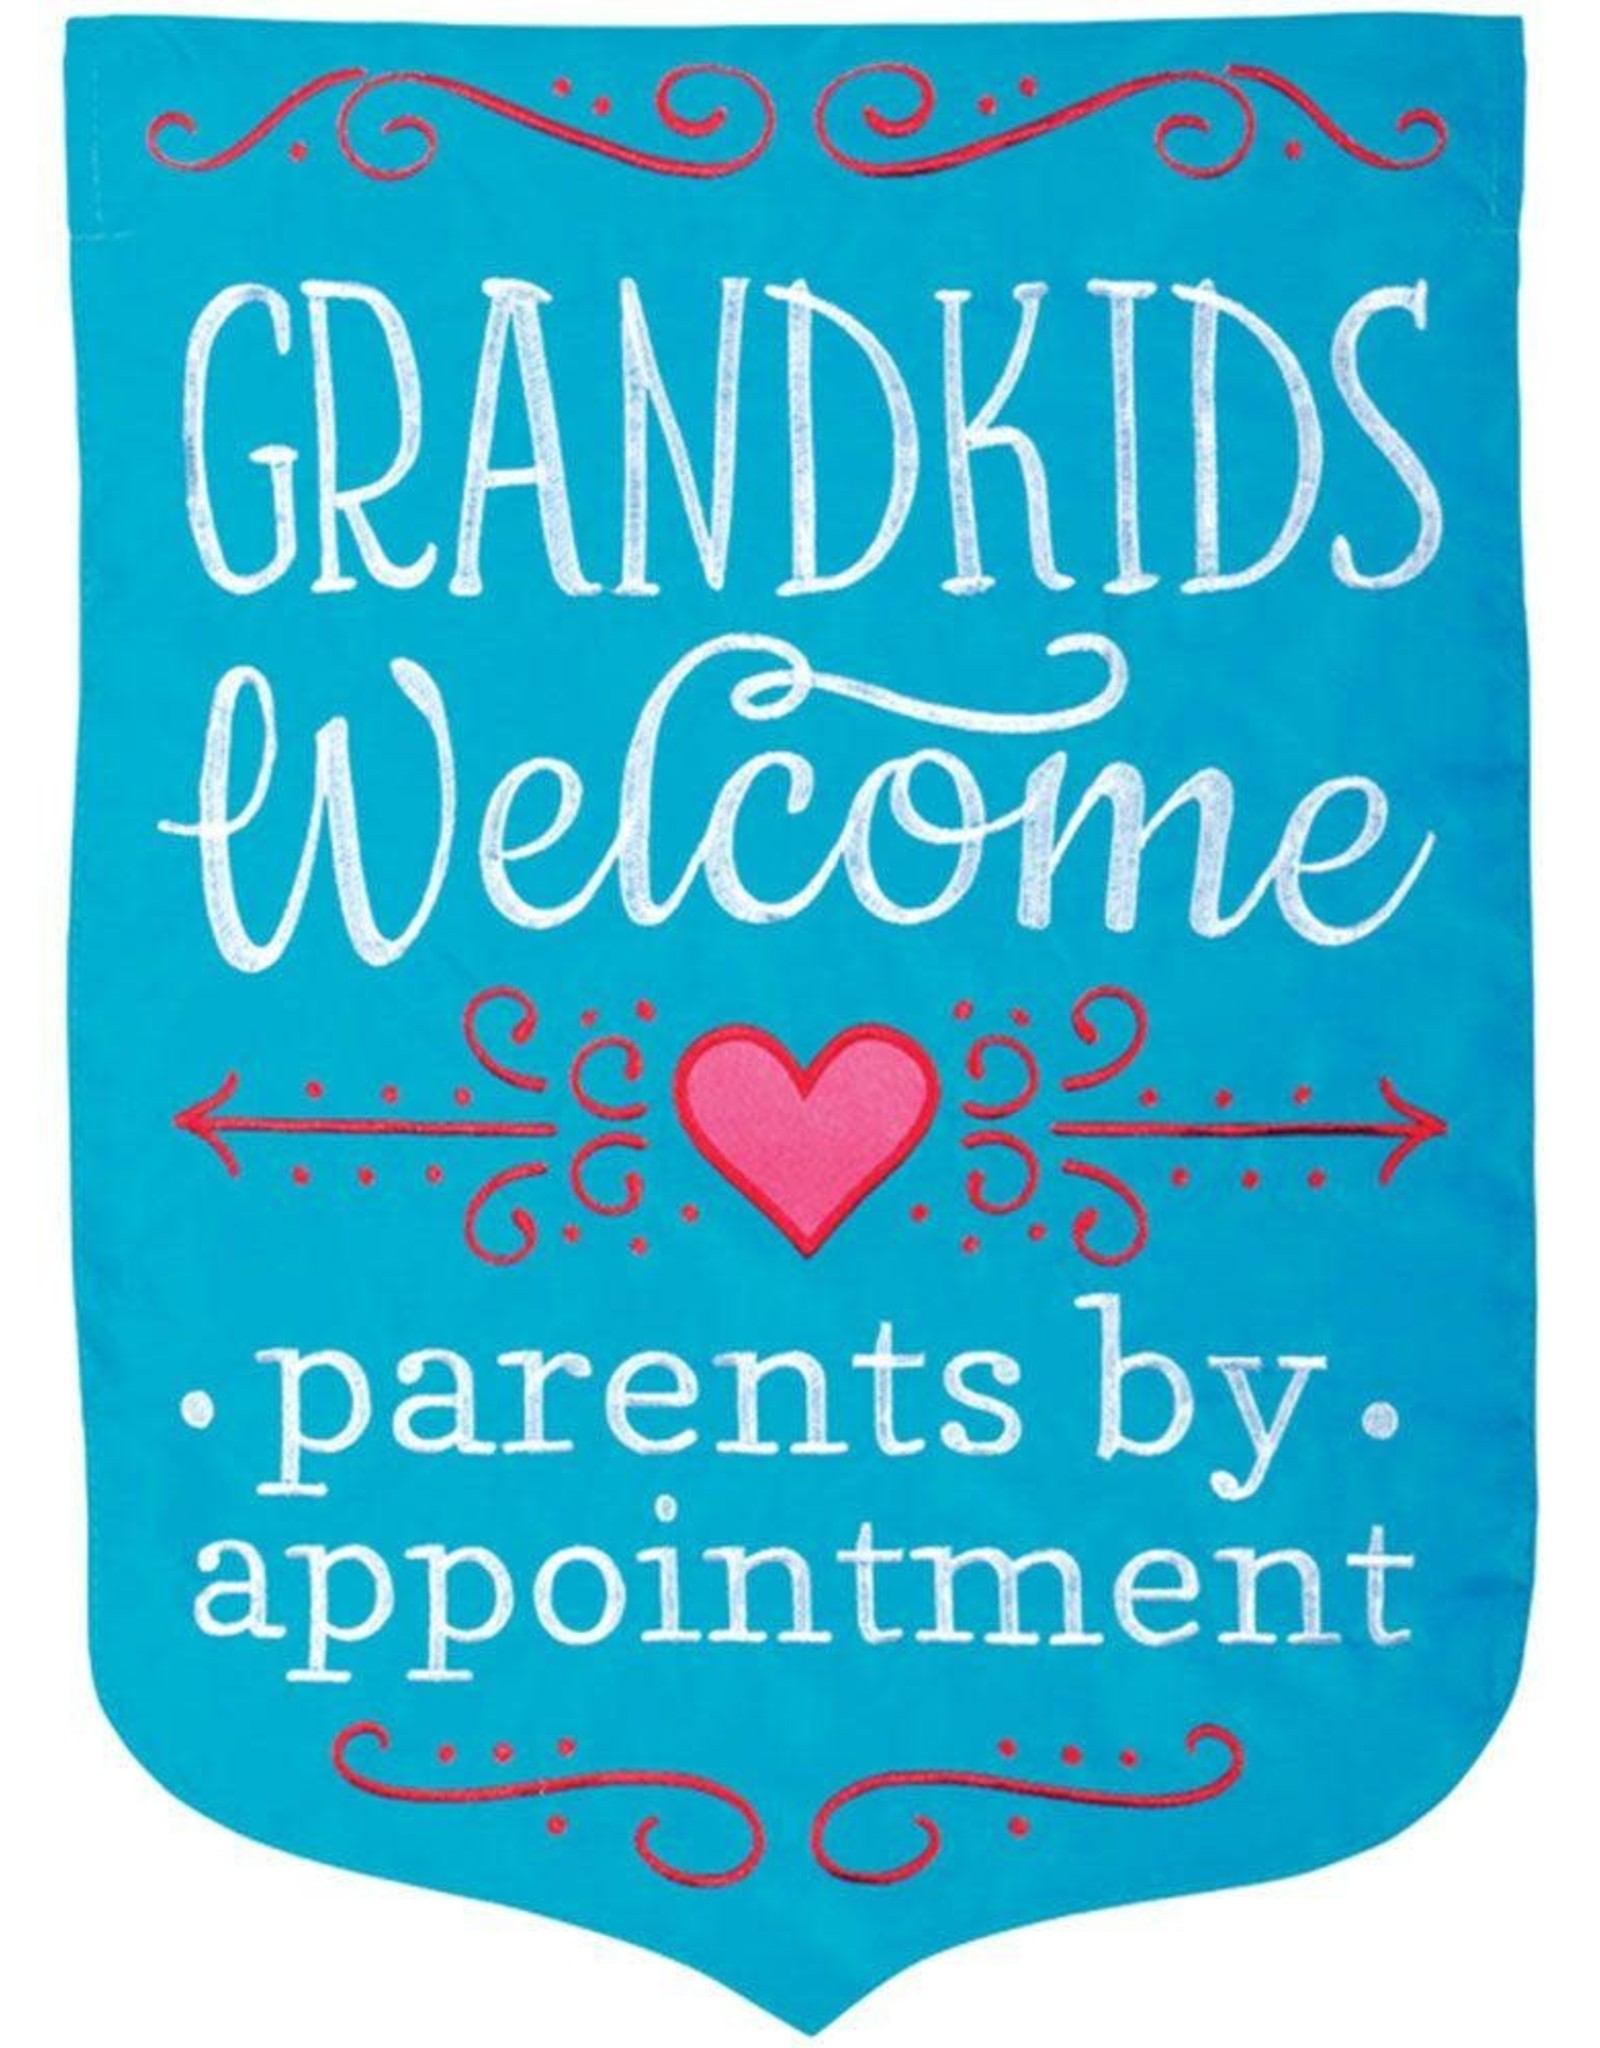 Carson C Parents by Appointment GF